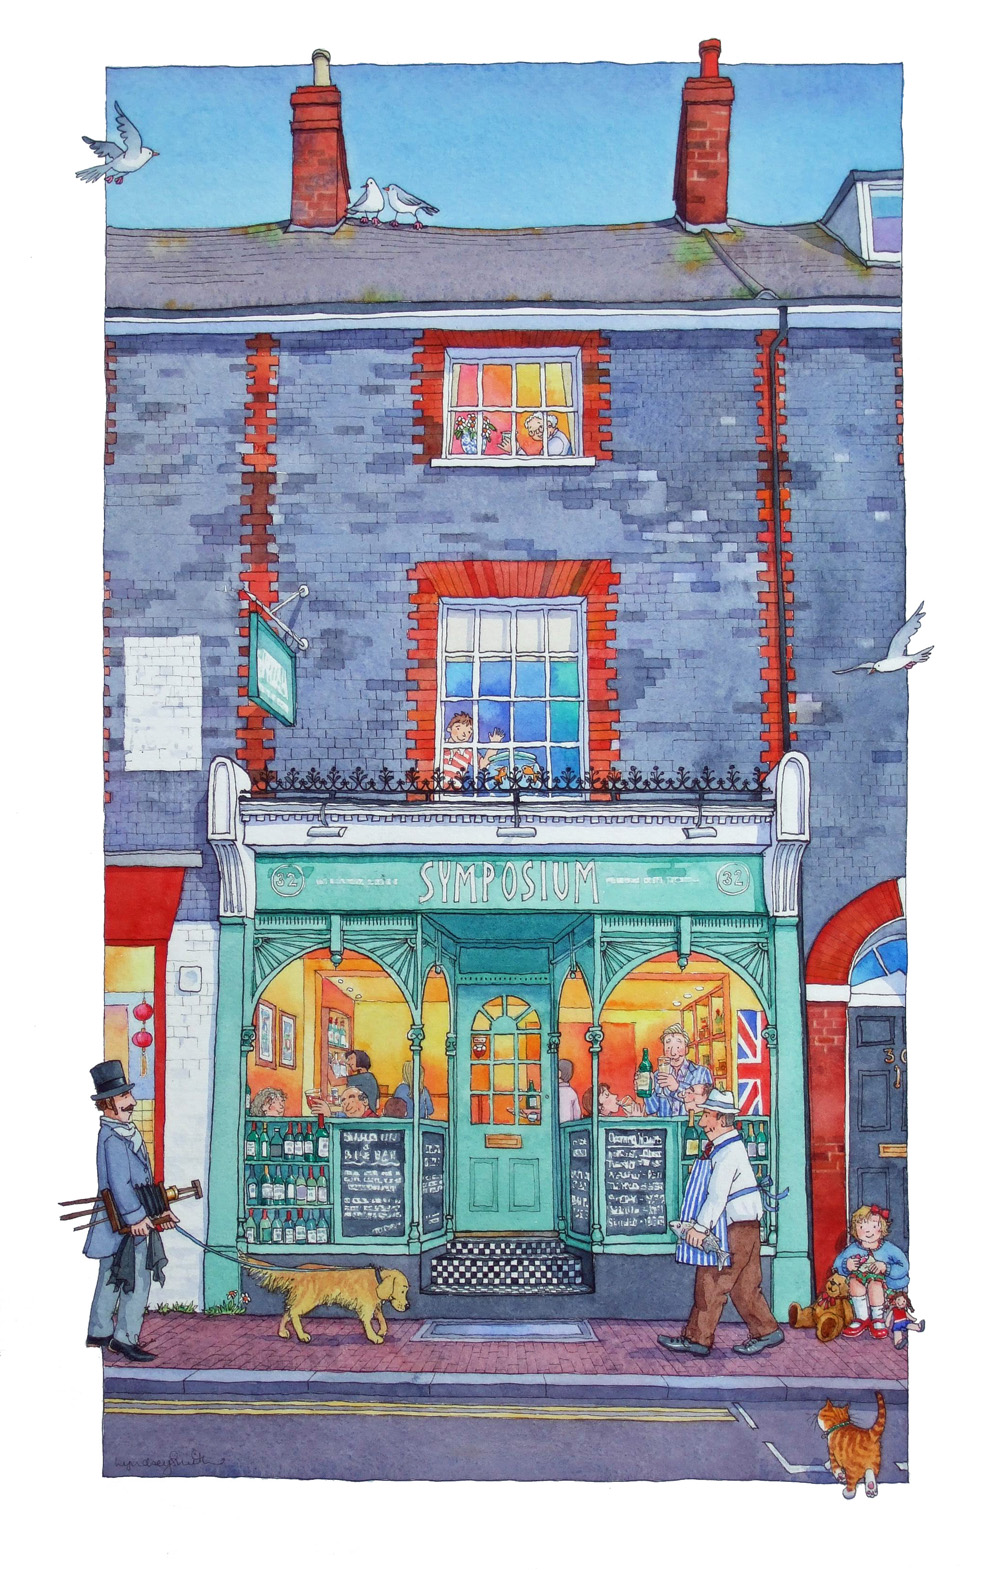 lyndseysmith march 2013 i really enjoyed painting those windows will be on the look out for more like that now there are not many left like that in lewes